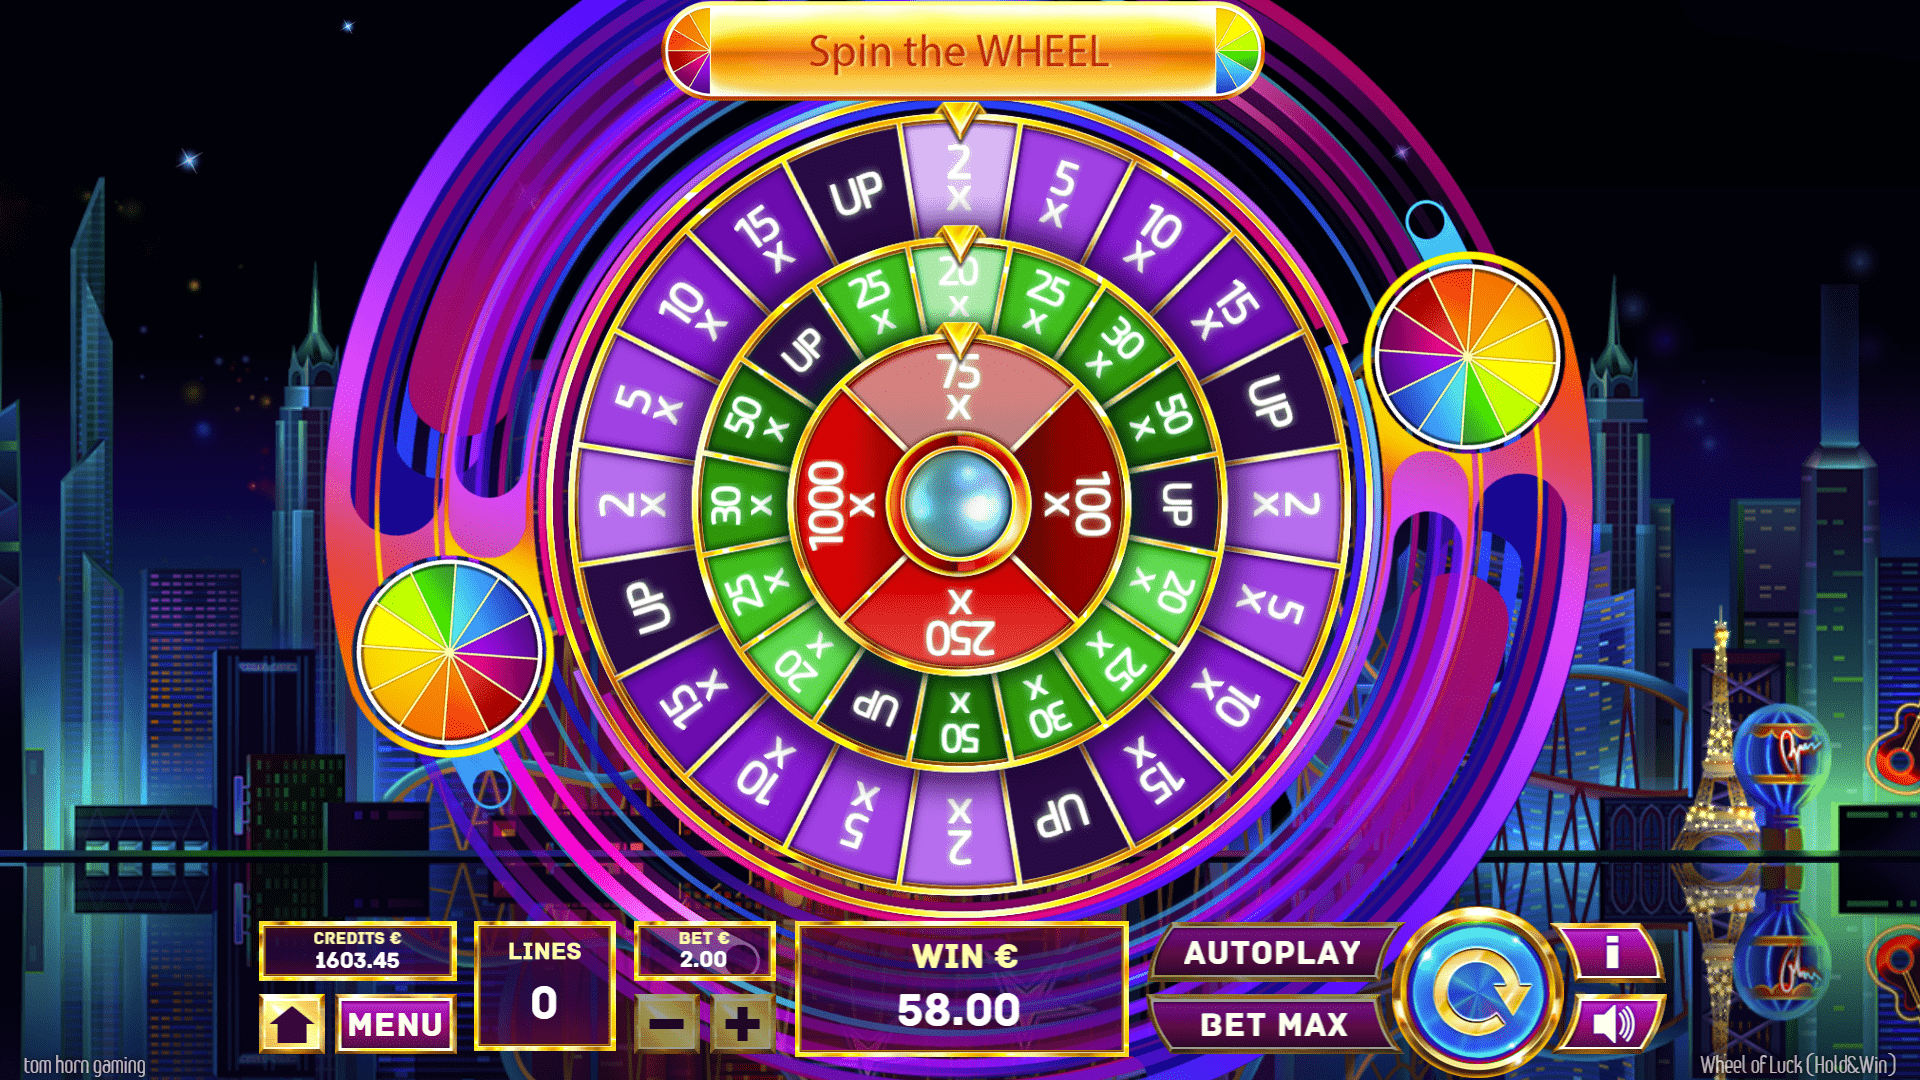 Wheel of Luck by Tom Horn Gaming